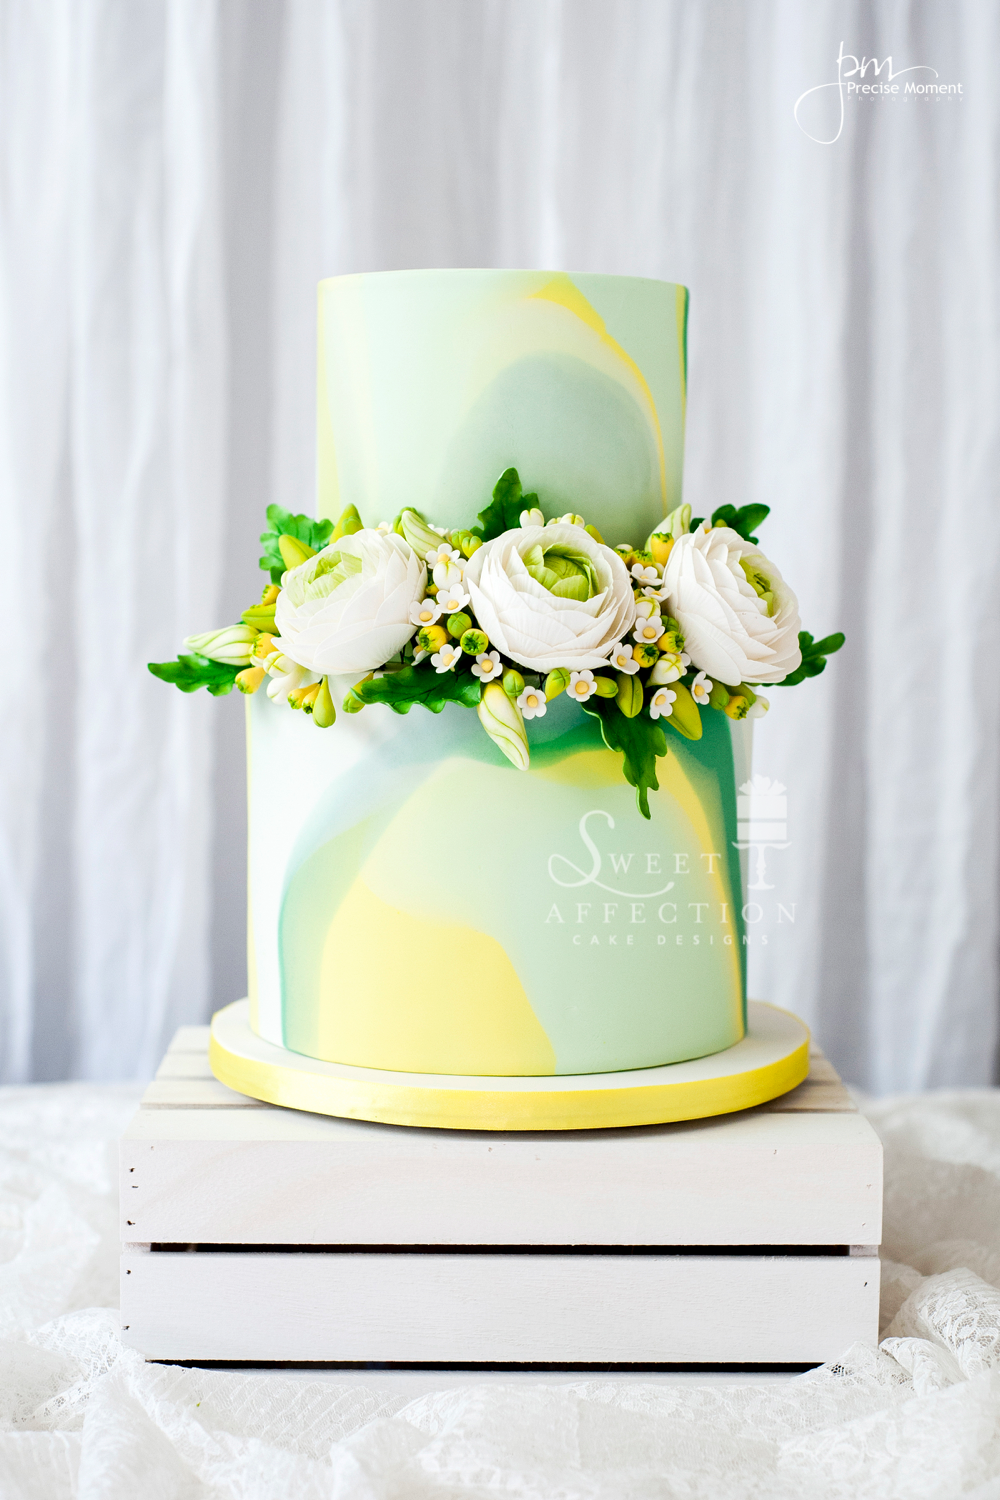 Maria-Shaw-Sweet-Affection-Cake-Design-Wedding-Elegant-6.png#asset:12689